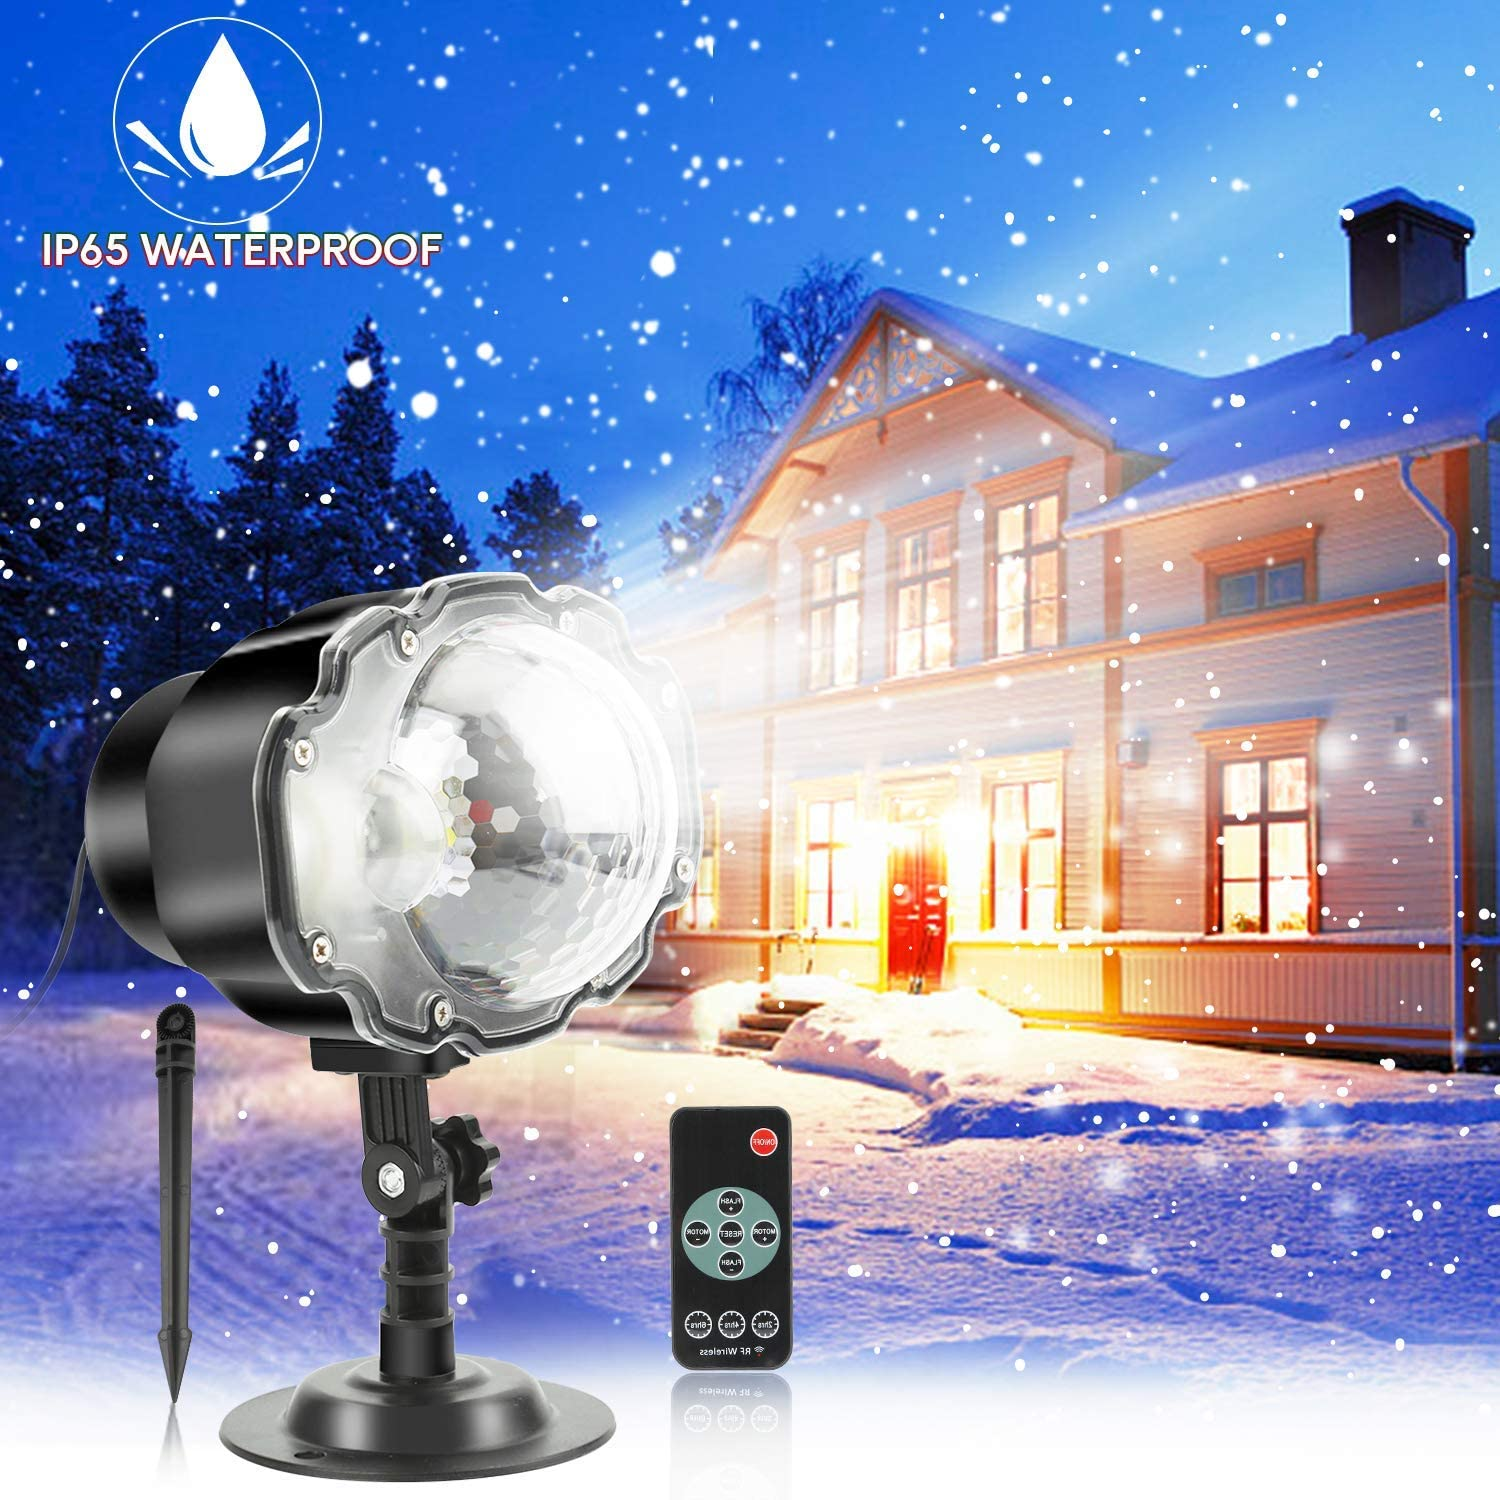 Christmas LED Snowfall Projector Lights Outdoor Remote Control Waterproof Rotatable White Snow for Halloween Holiday Party Wedding Garden Decorations